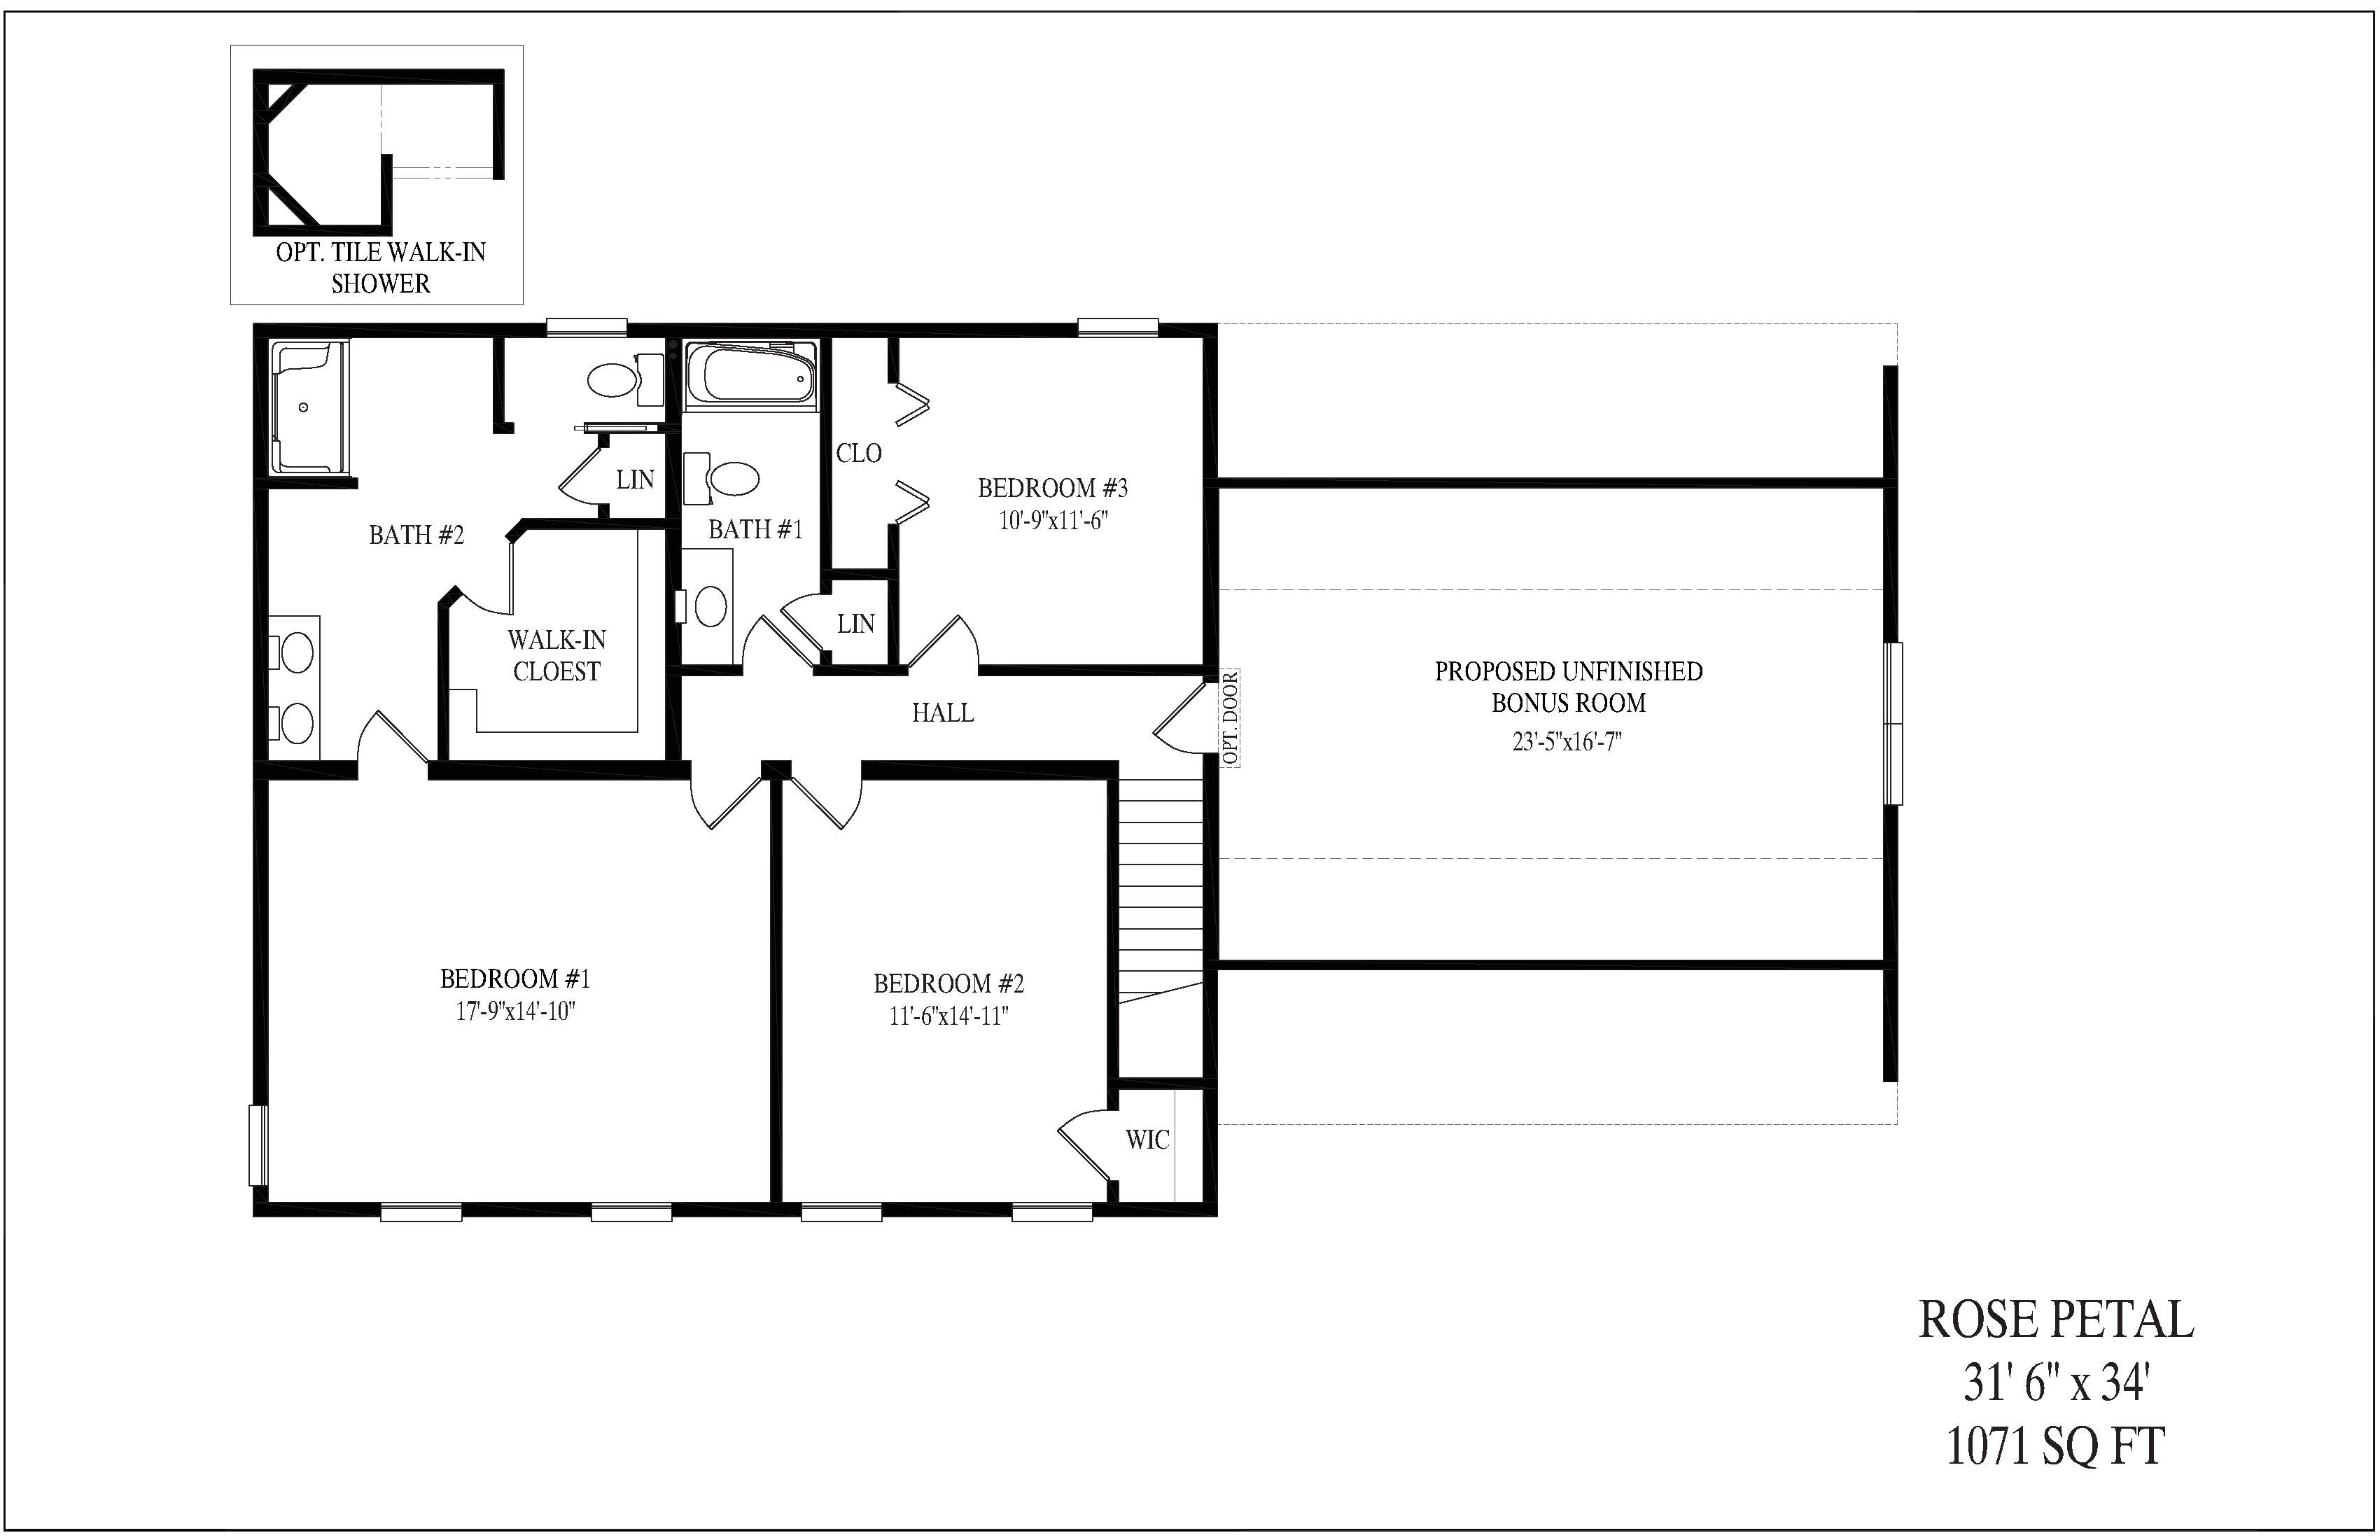 this http://custombuildingsystems.net/wp-content/uploads/2018/06/Rose-Petal-floor-plan_Page_2.jpg